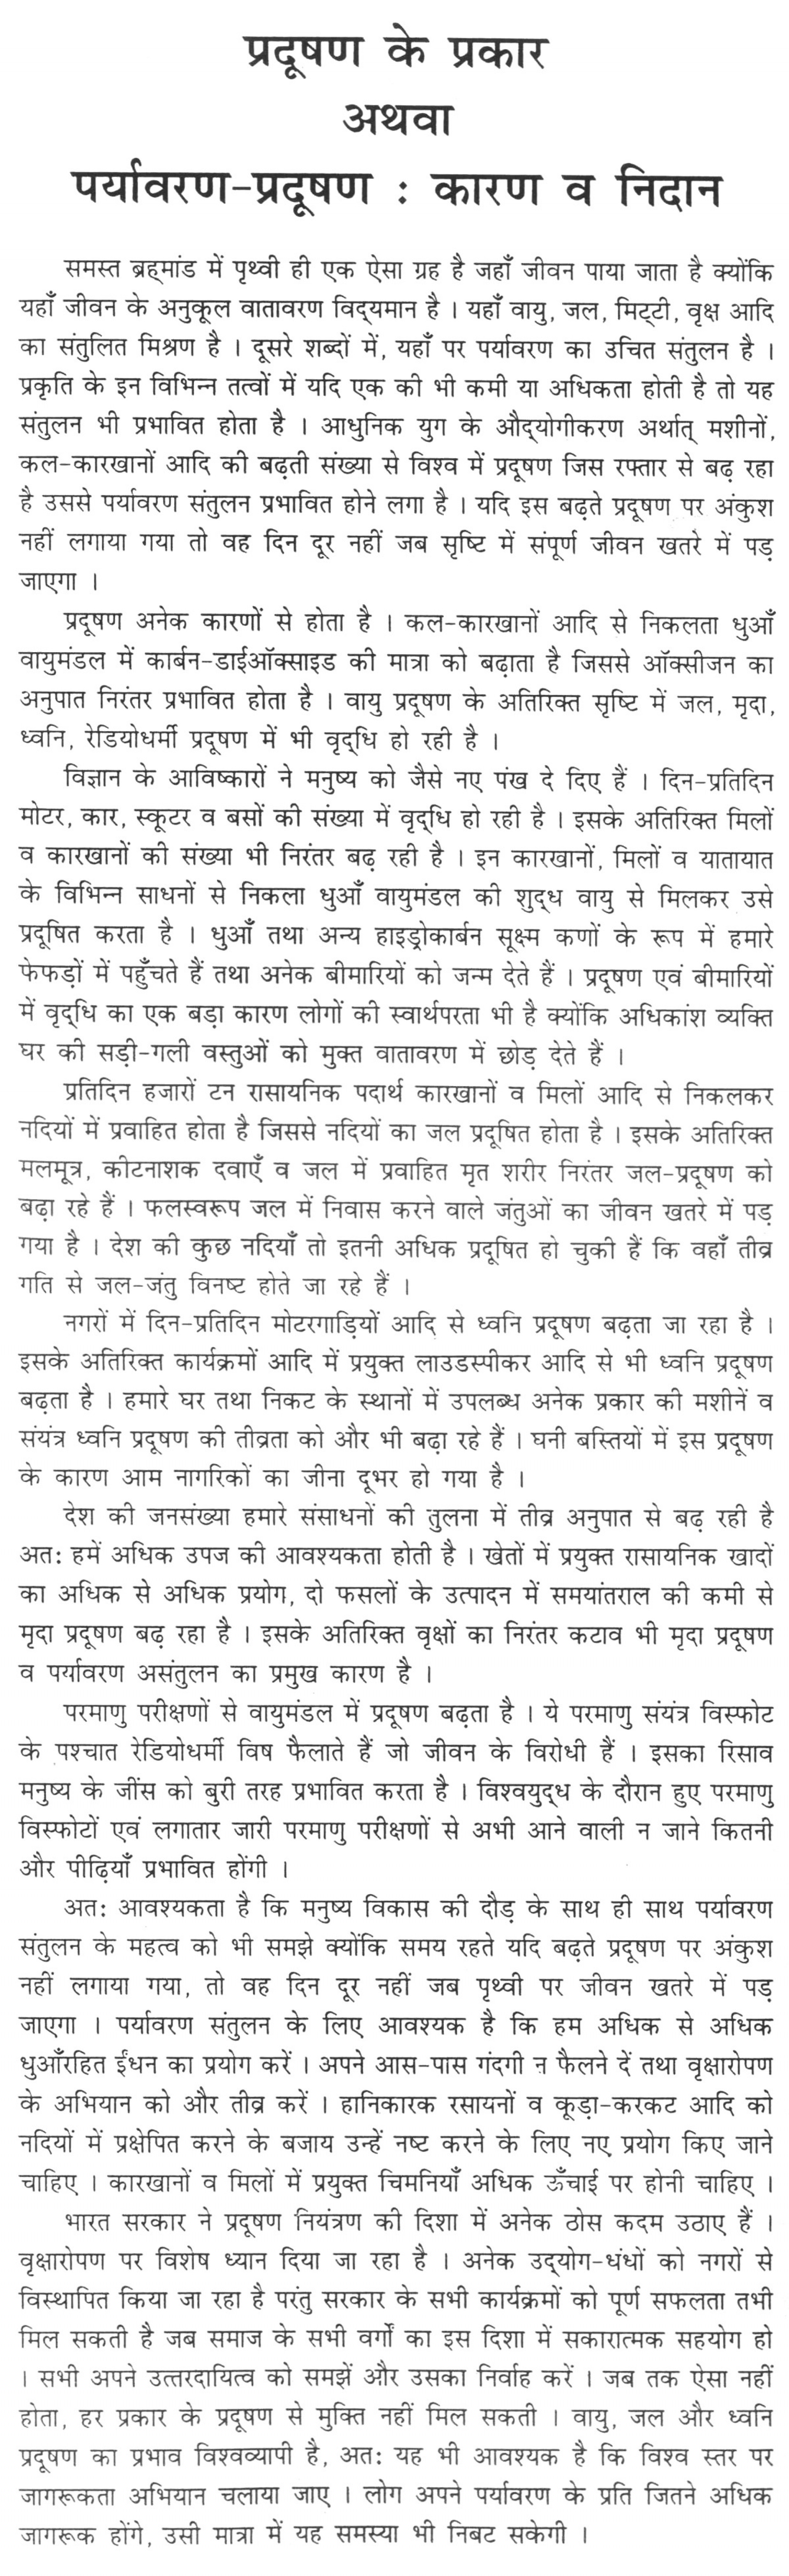 014 Good Habits Essay In Hindi Exceptional Food Wikipedia 1920